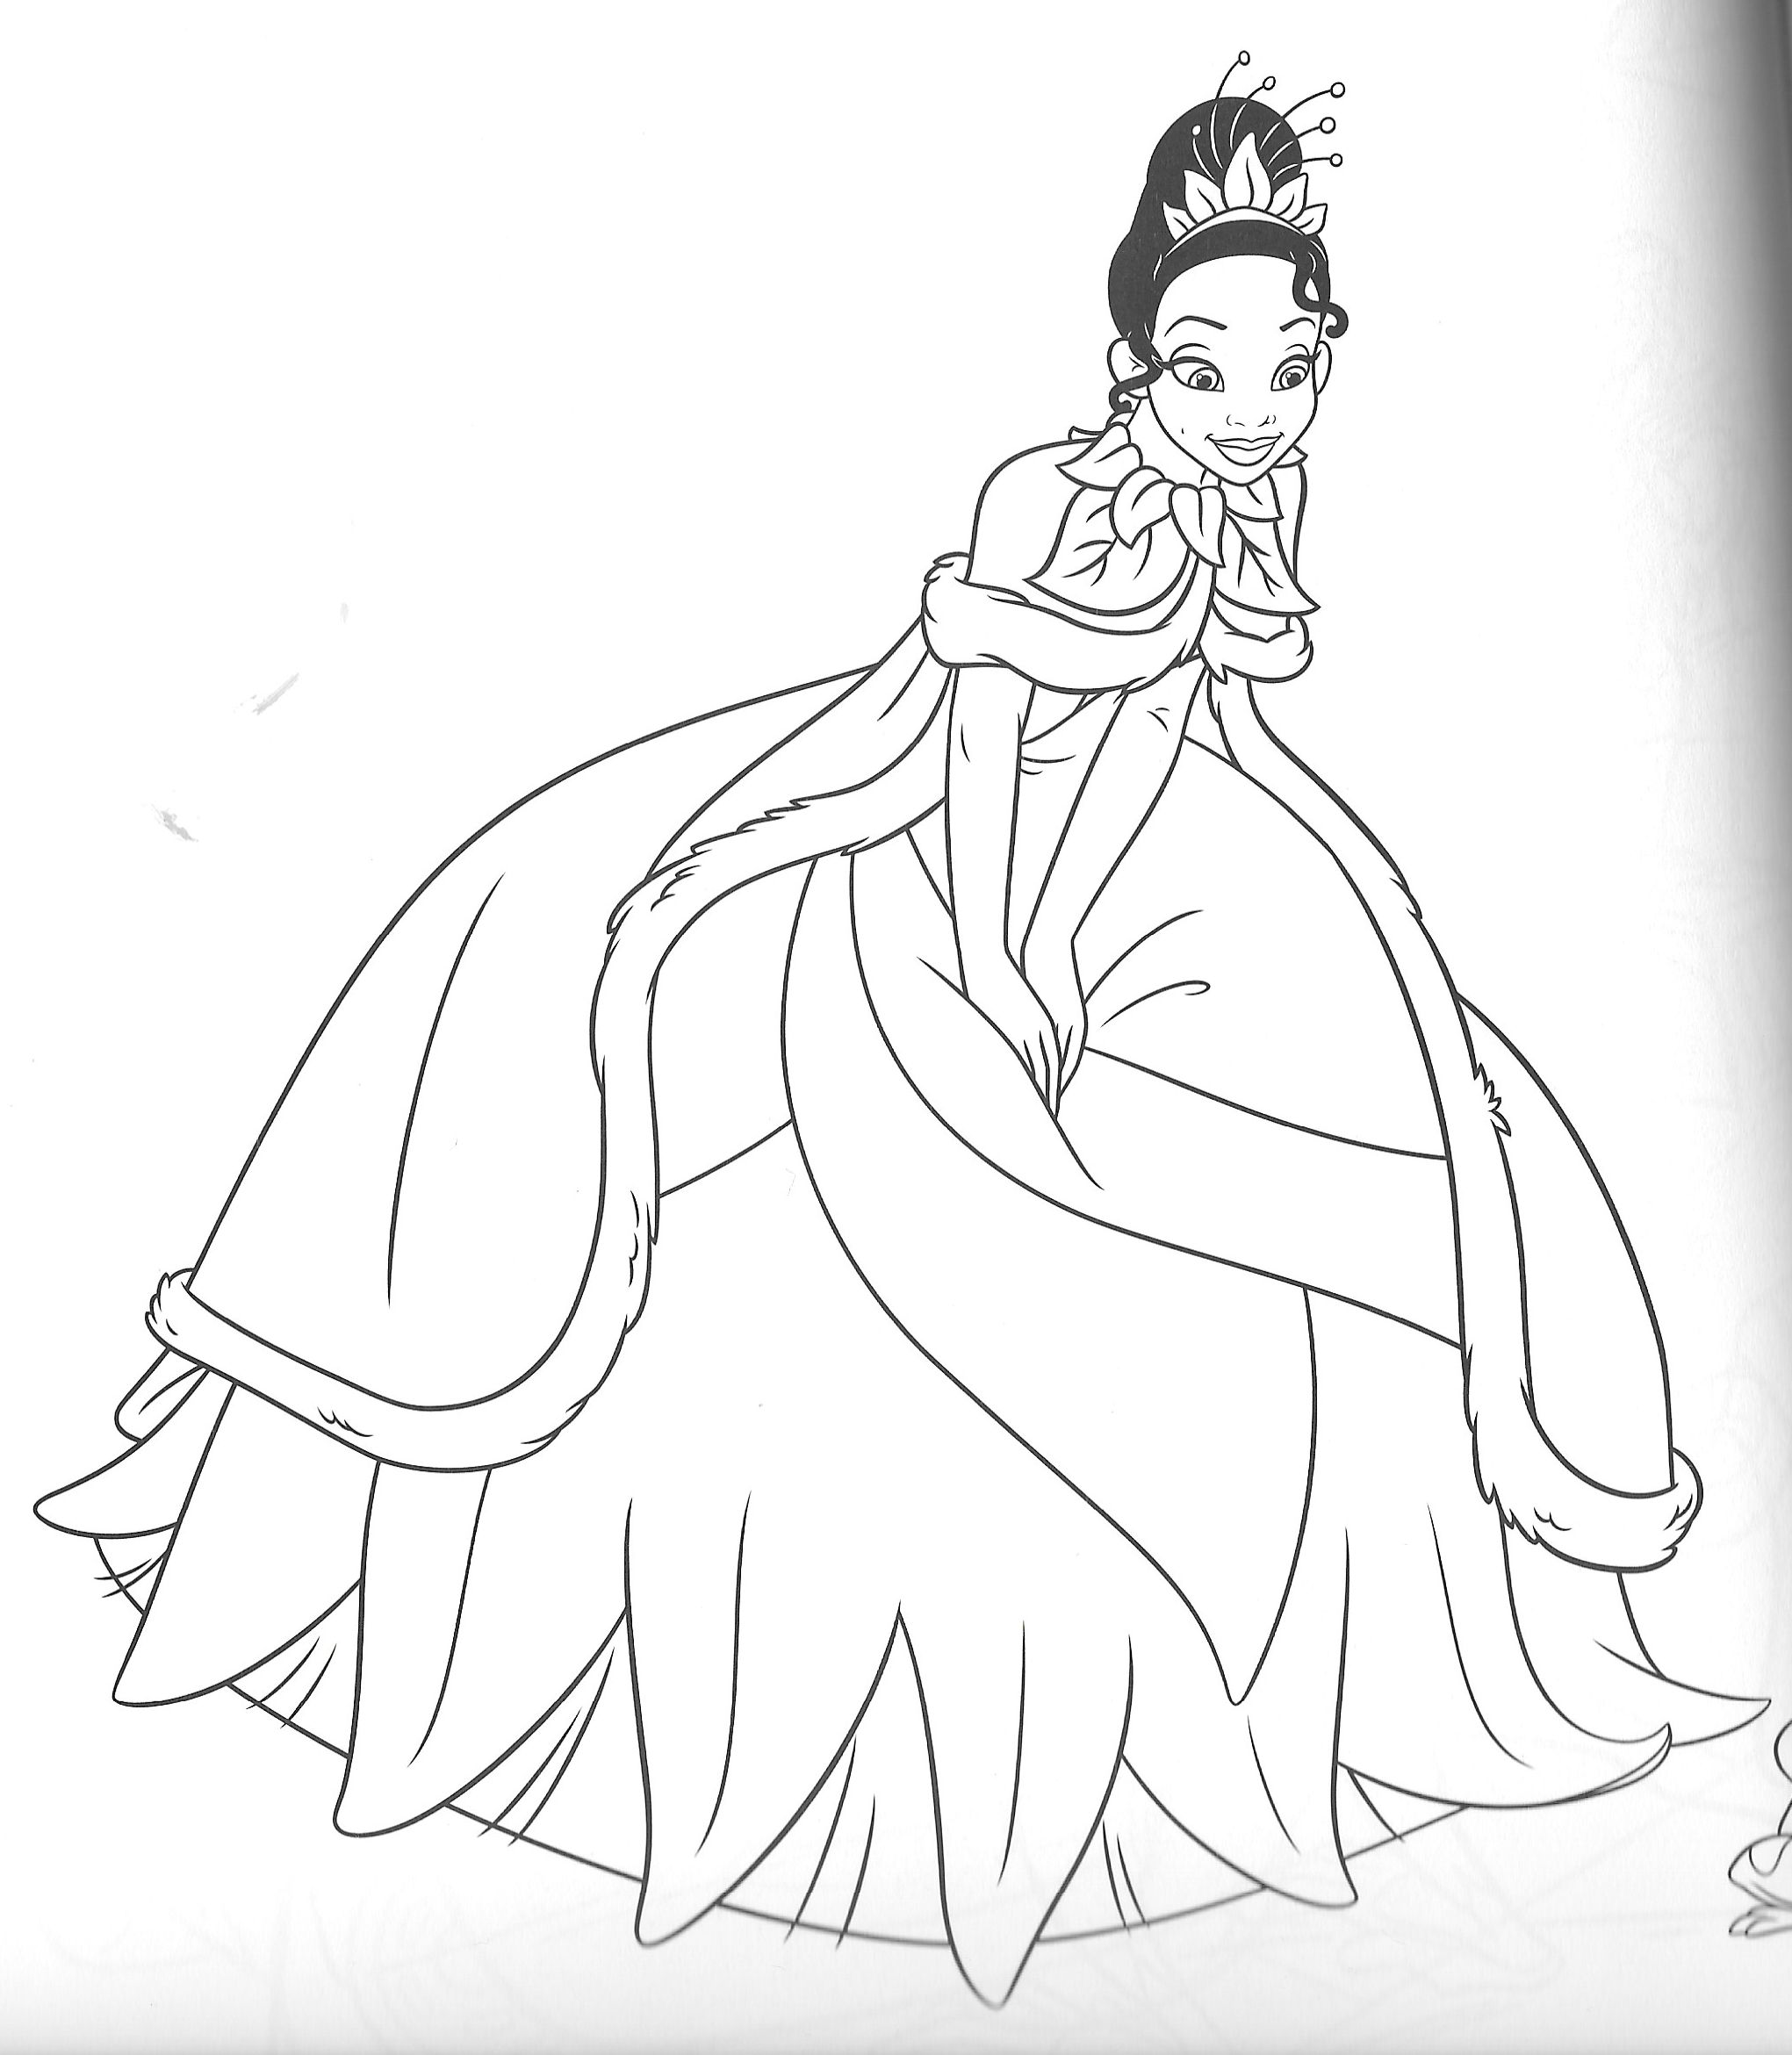 Pin By Melissa Chase On Color Me Happy Disney Princess Coloring Pages Princess Coloring Disney Princess Colors